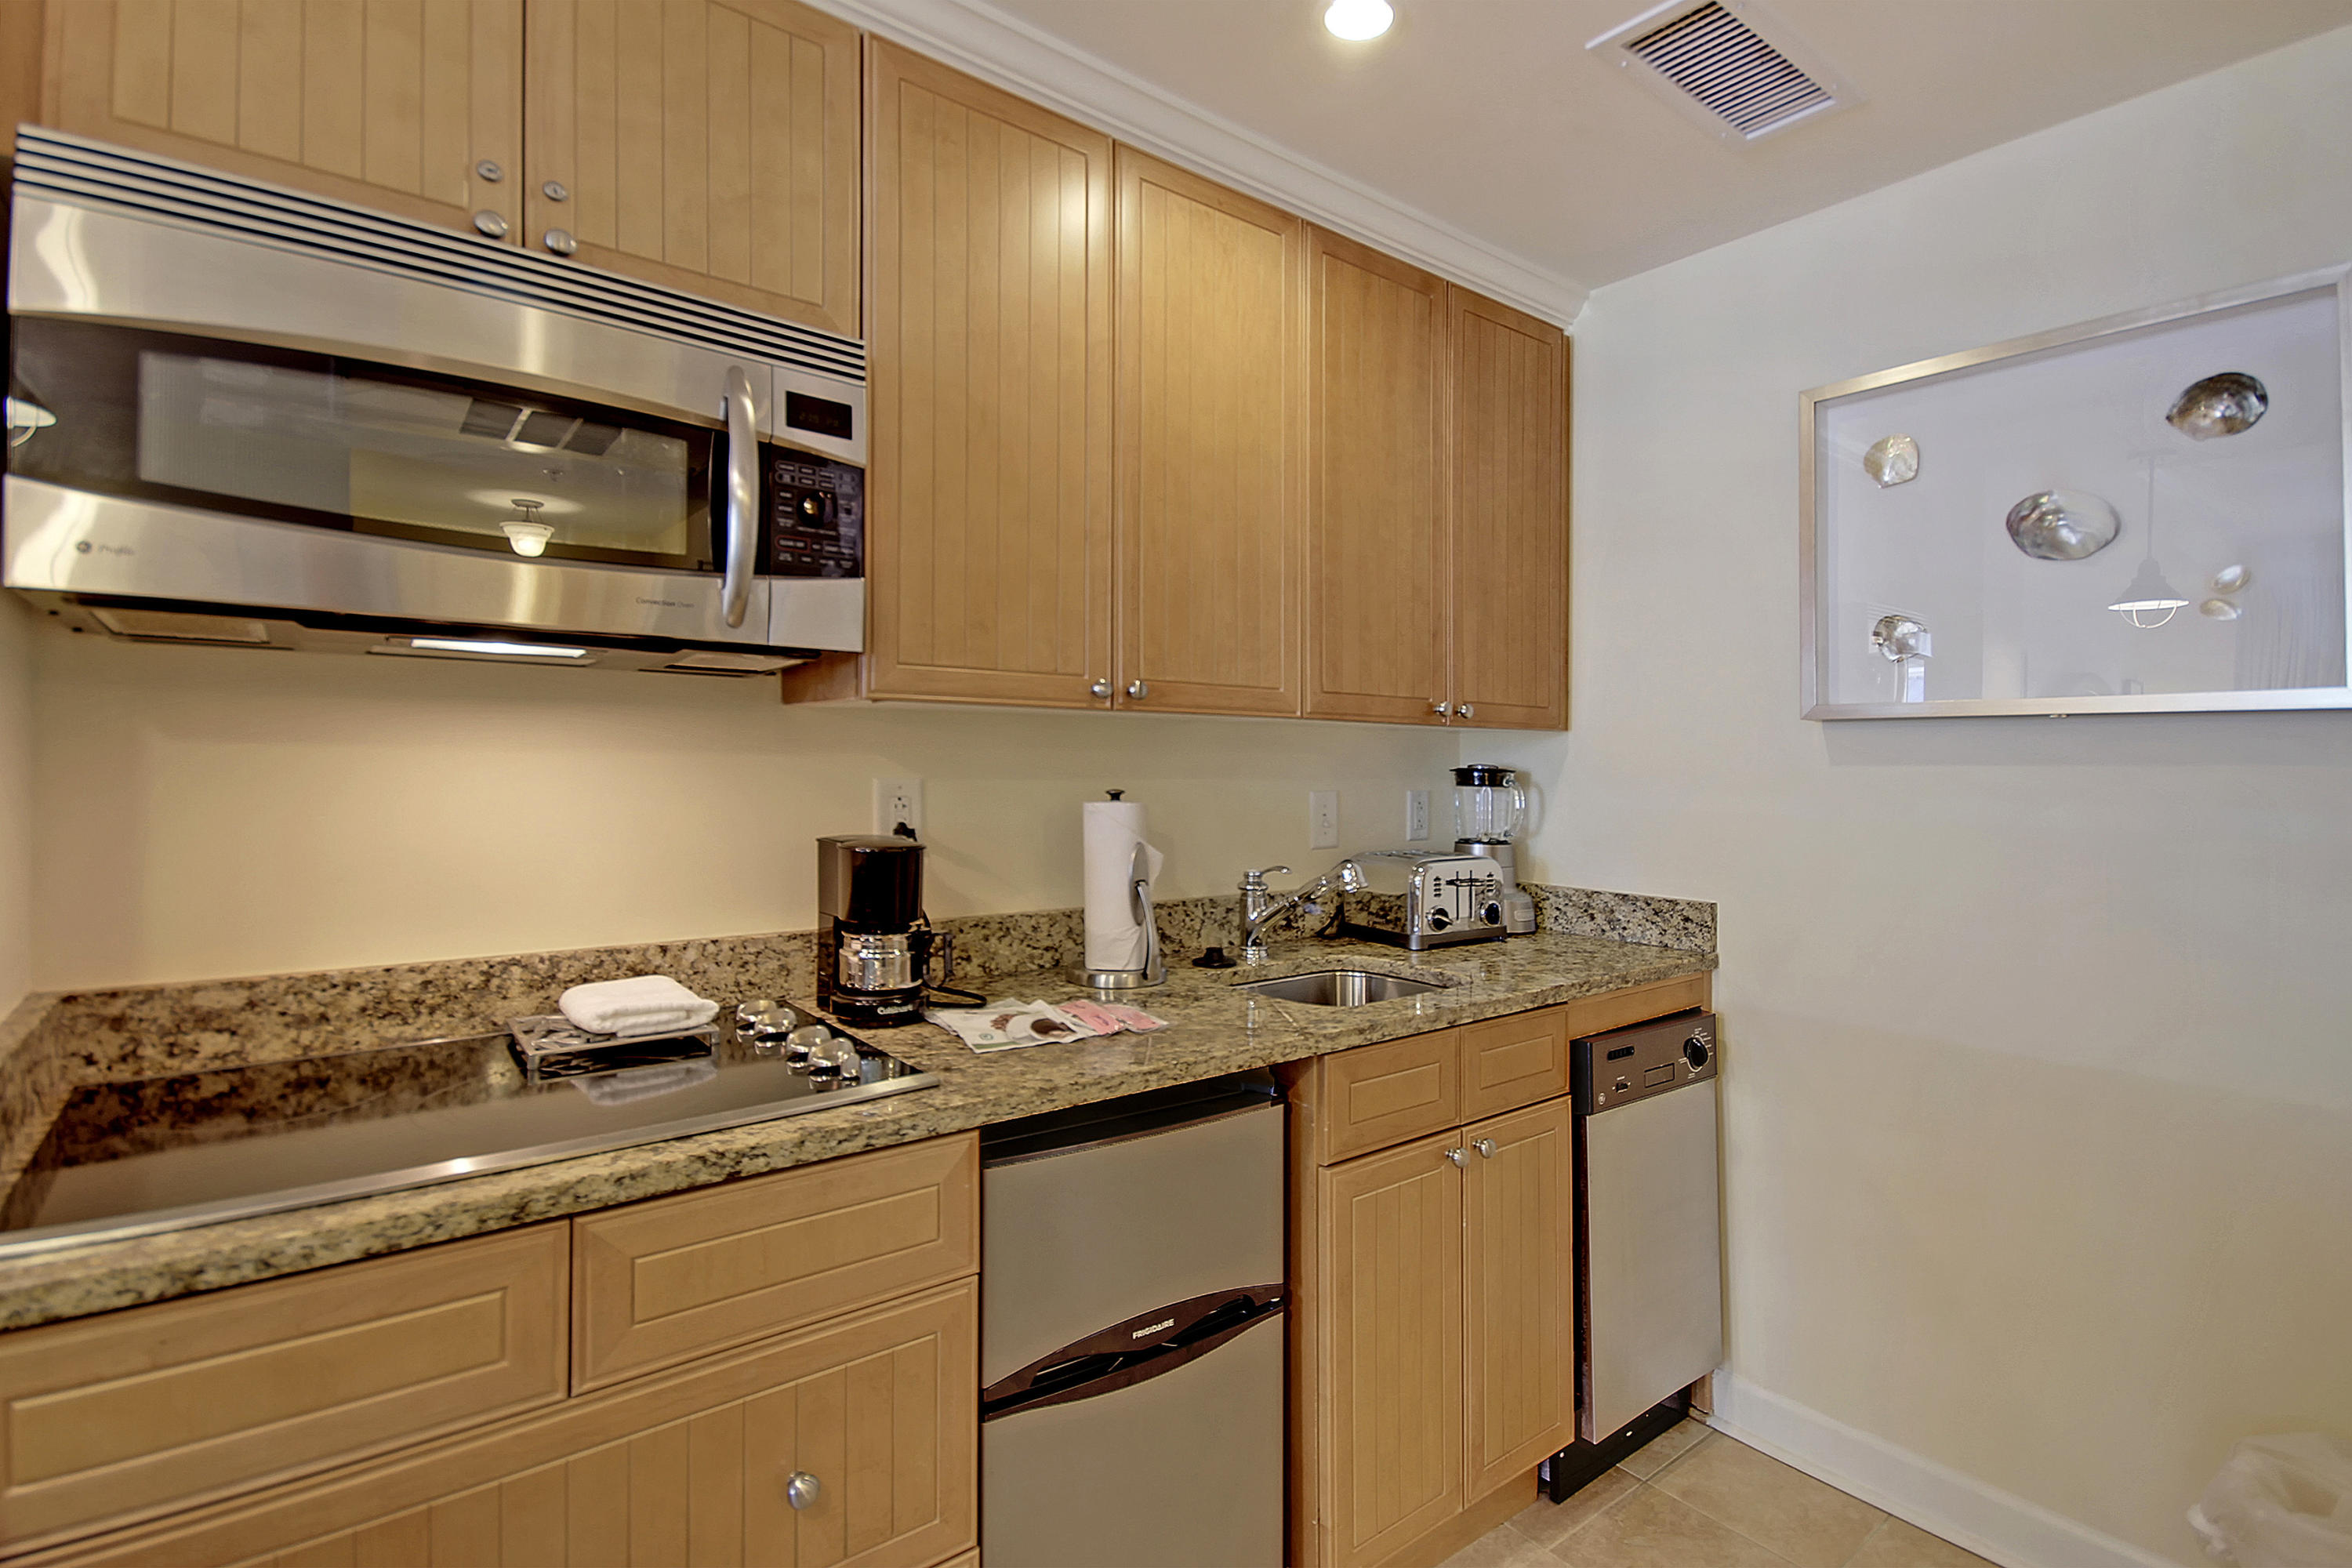 Wild Dunes Homes For Sale - 406-A Village At Wild Dunes, Isle of Palms, SC - 19